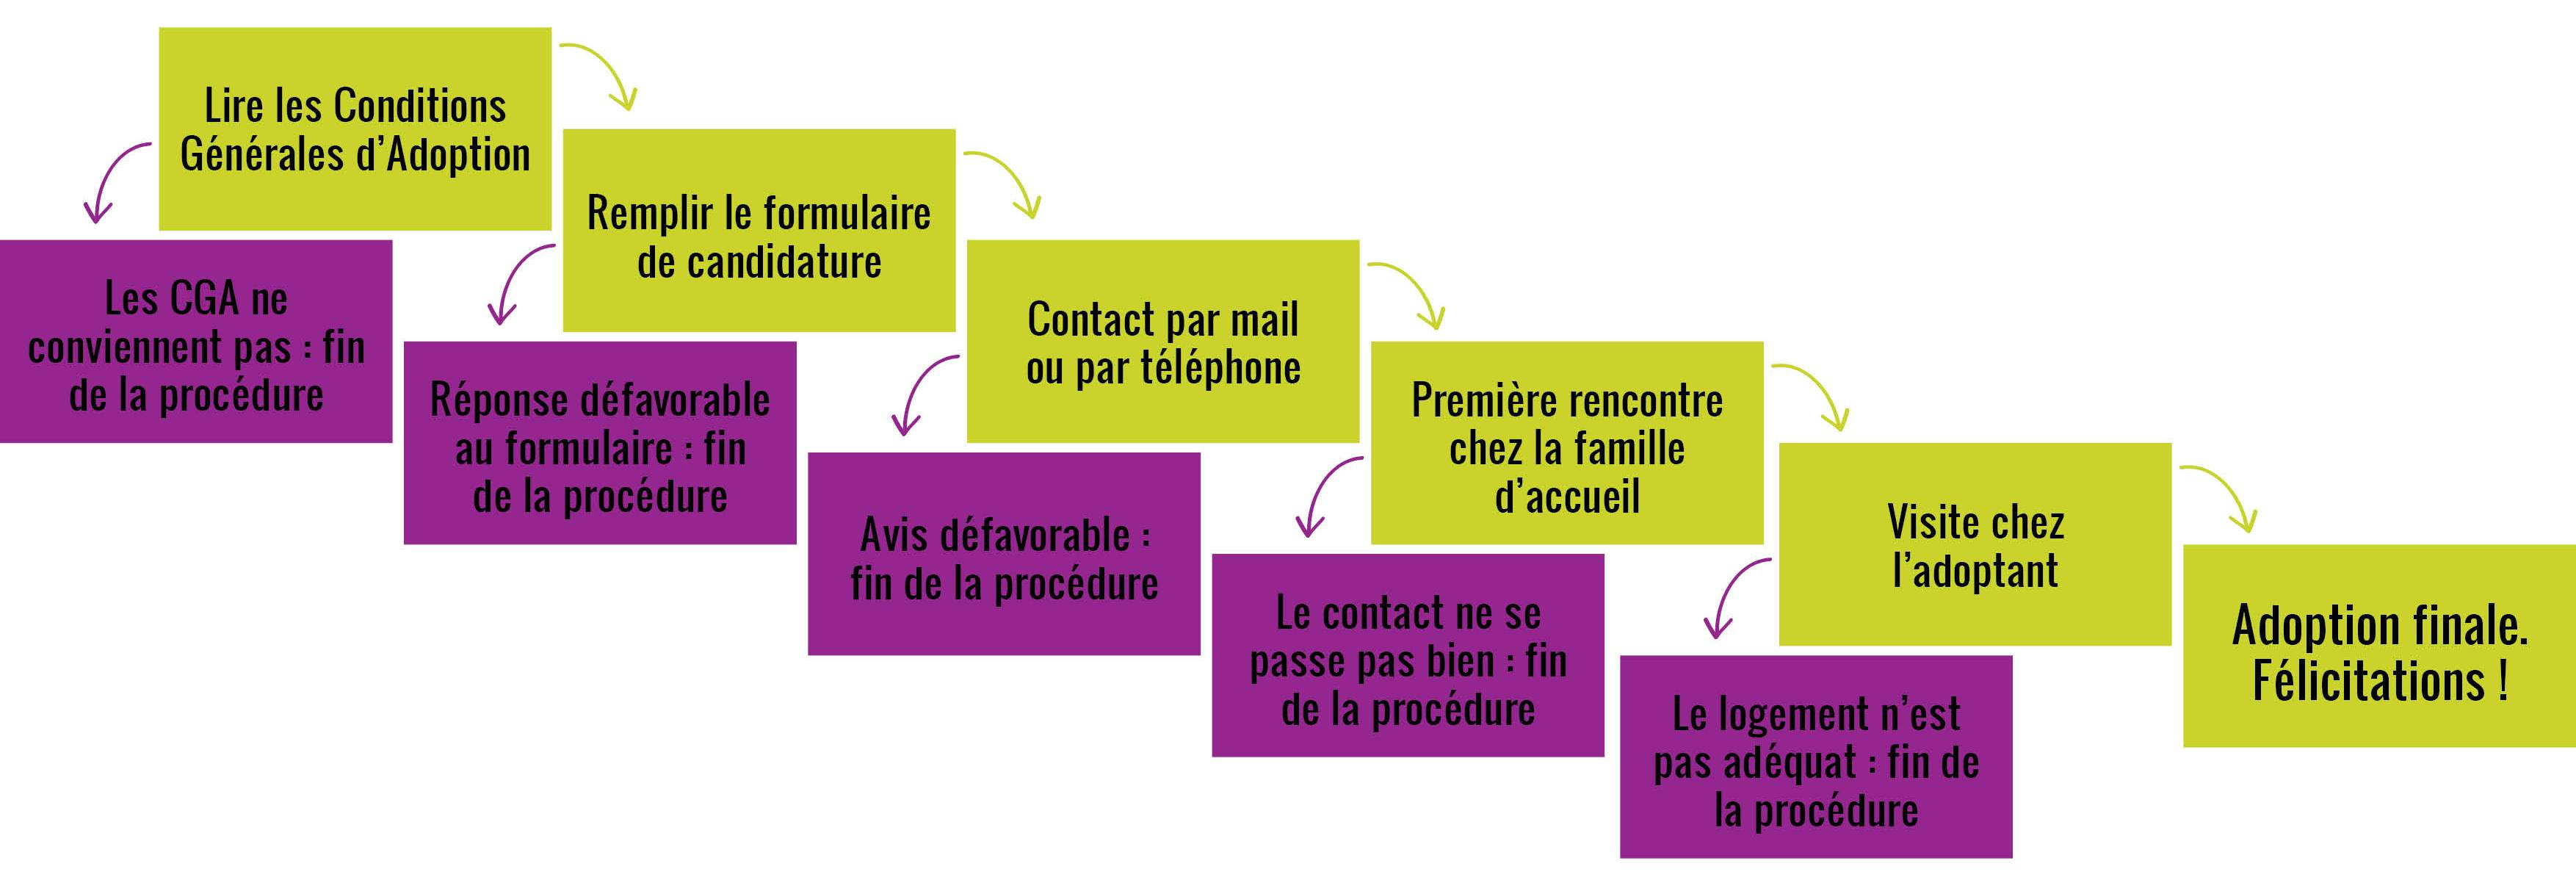 Processus d'adoption - comment adopter